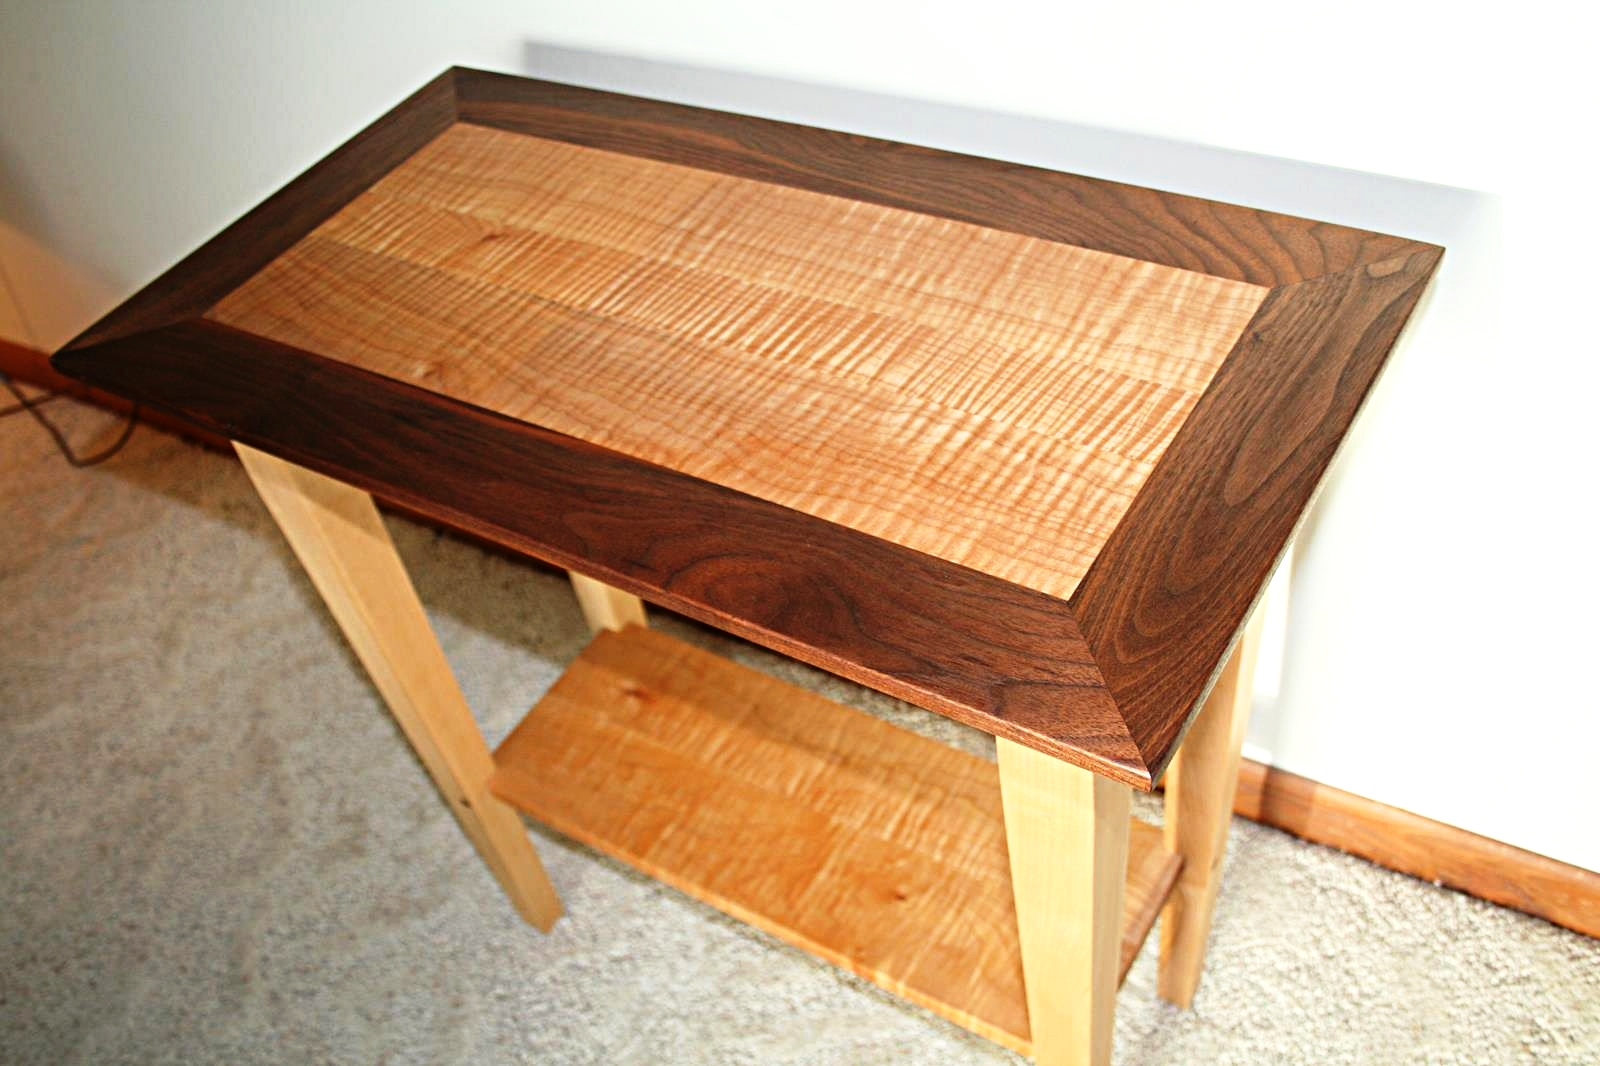 End Table - Walnut and Figured Maple